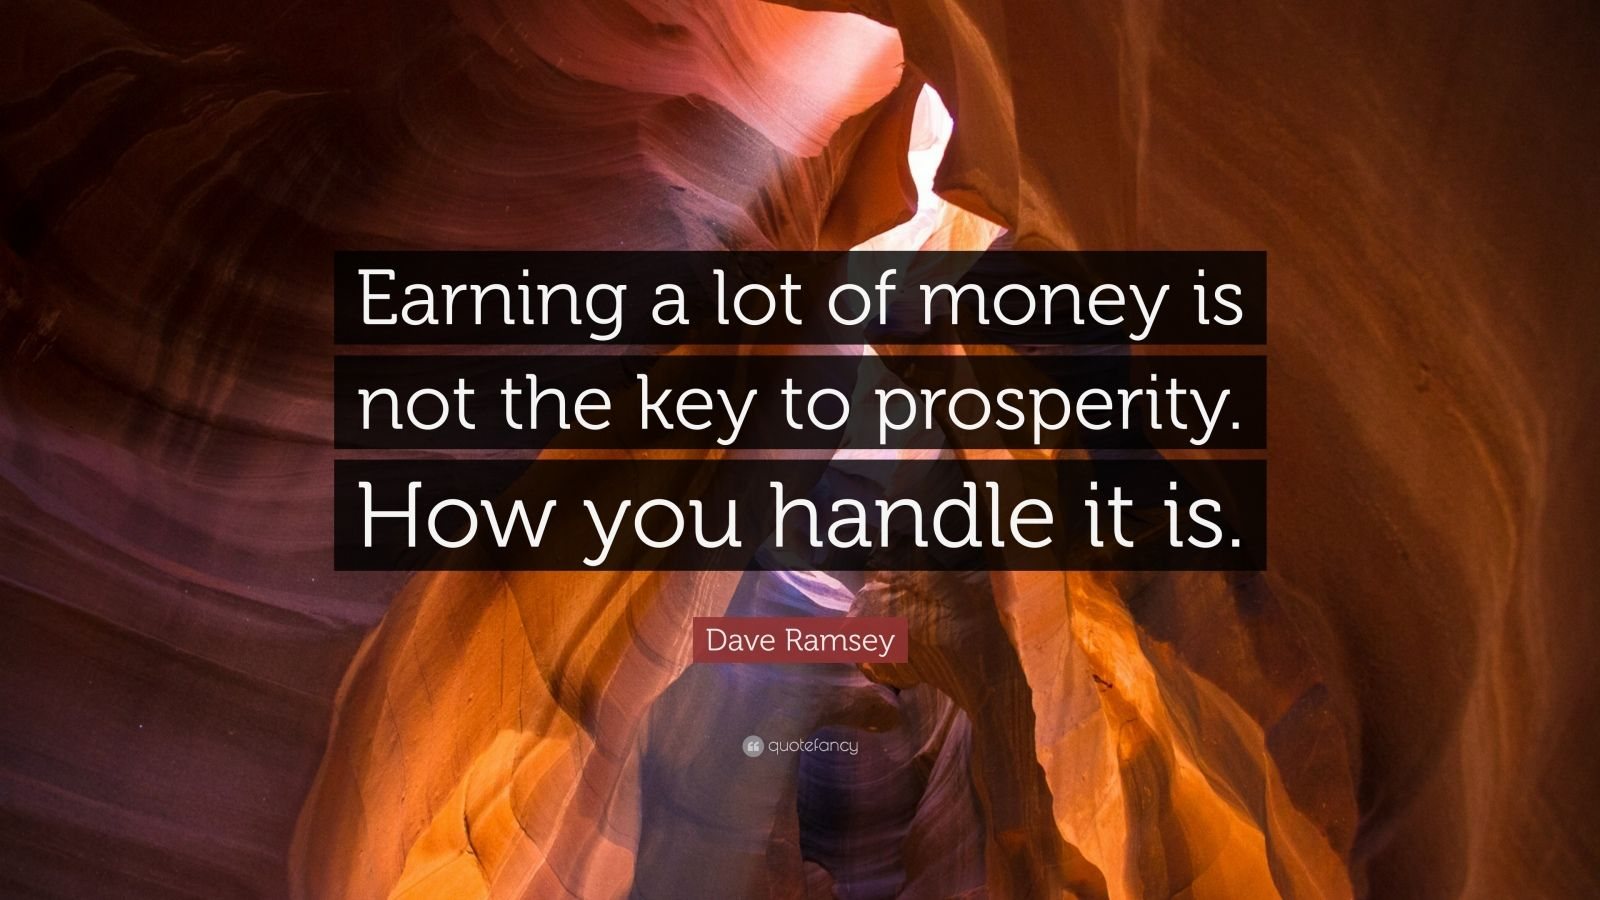 """Dave Ramsey Quote: """"Earning a lot of money is not the key to prosperity. How you handle it is."""""""